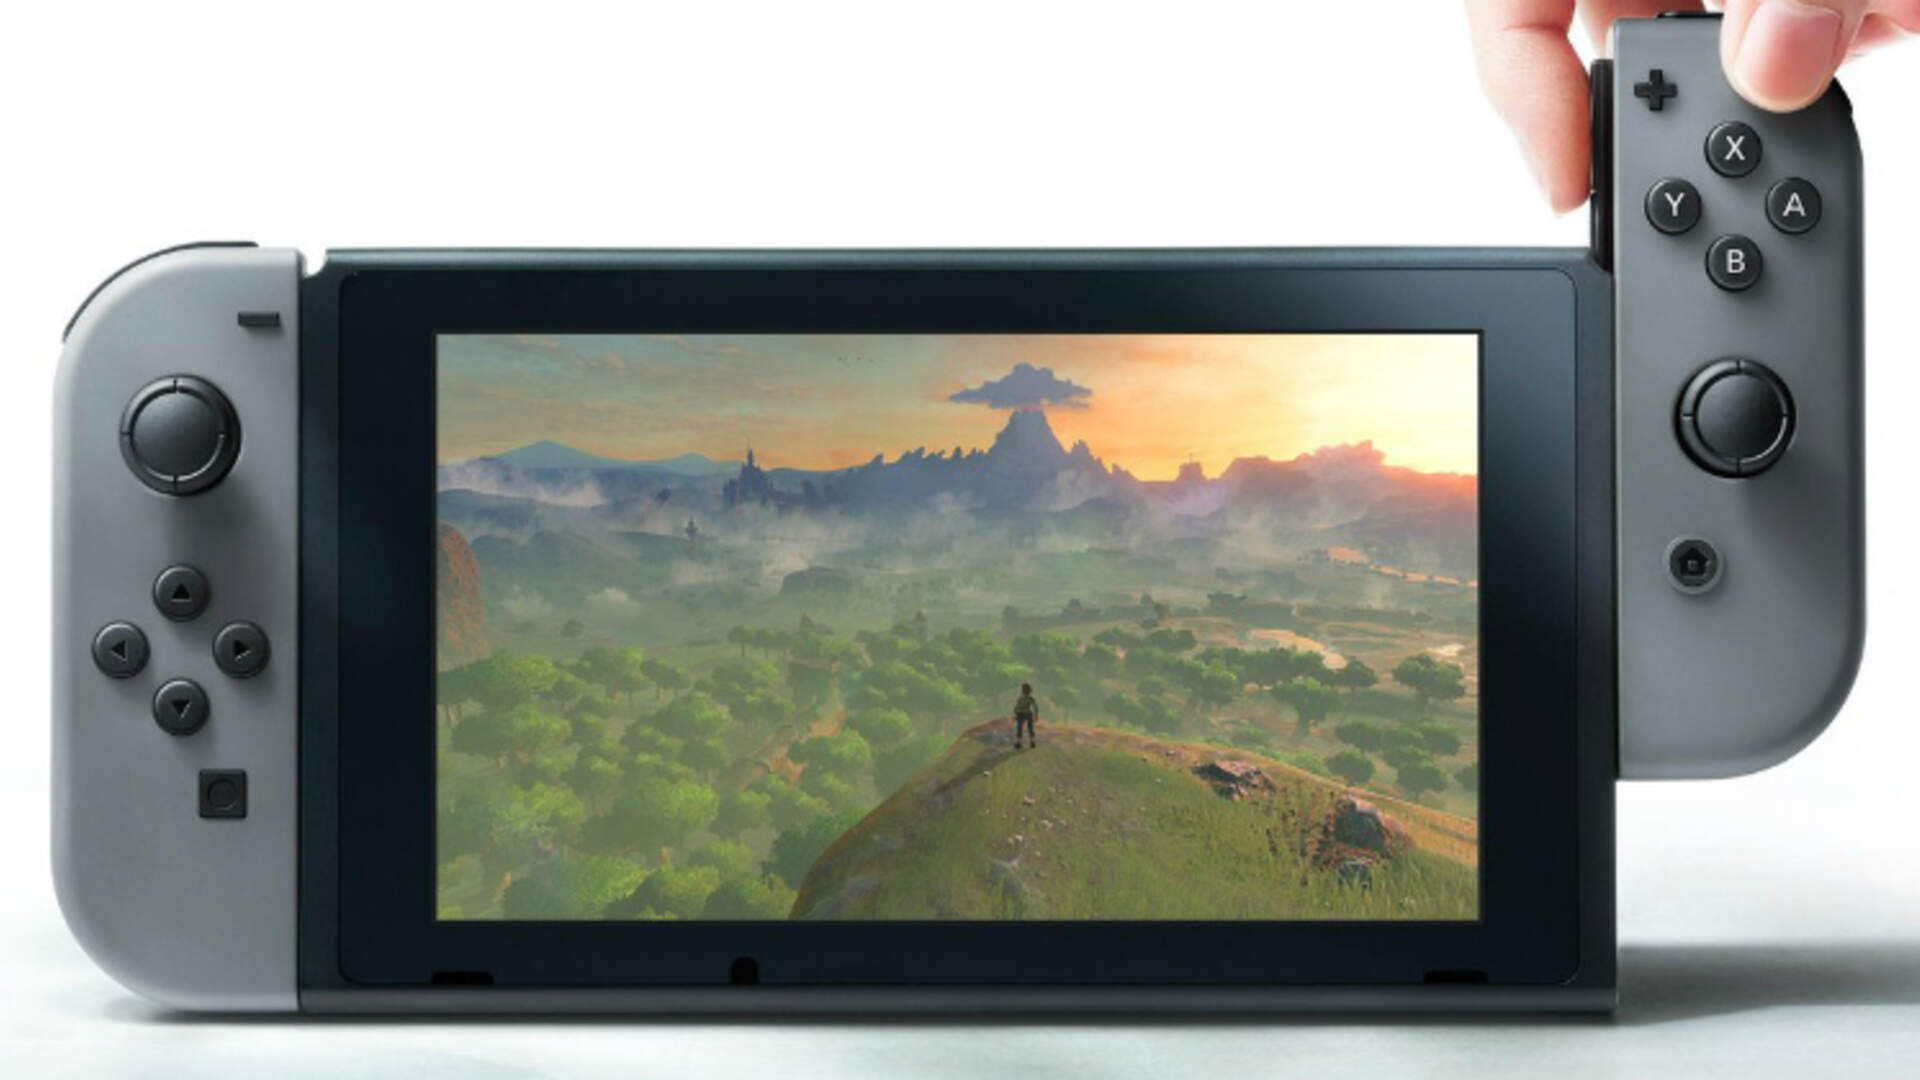 Nintendo Switch Update 4.0.0 Lets You Transfer Your Saves to Another System [Update]